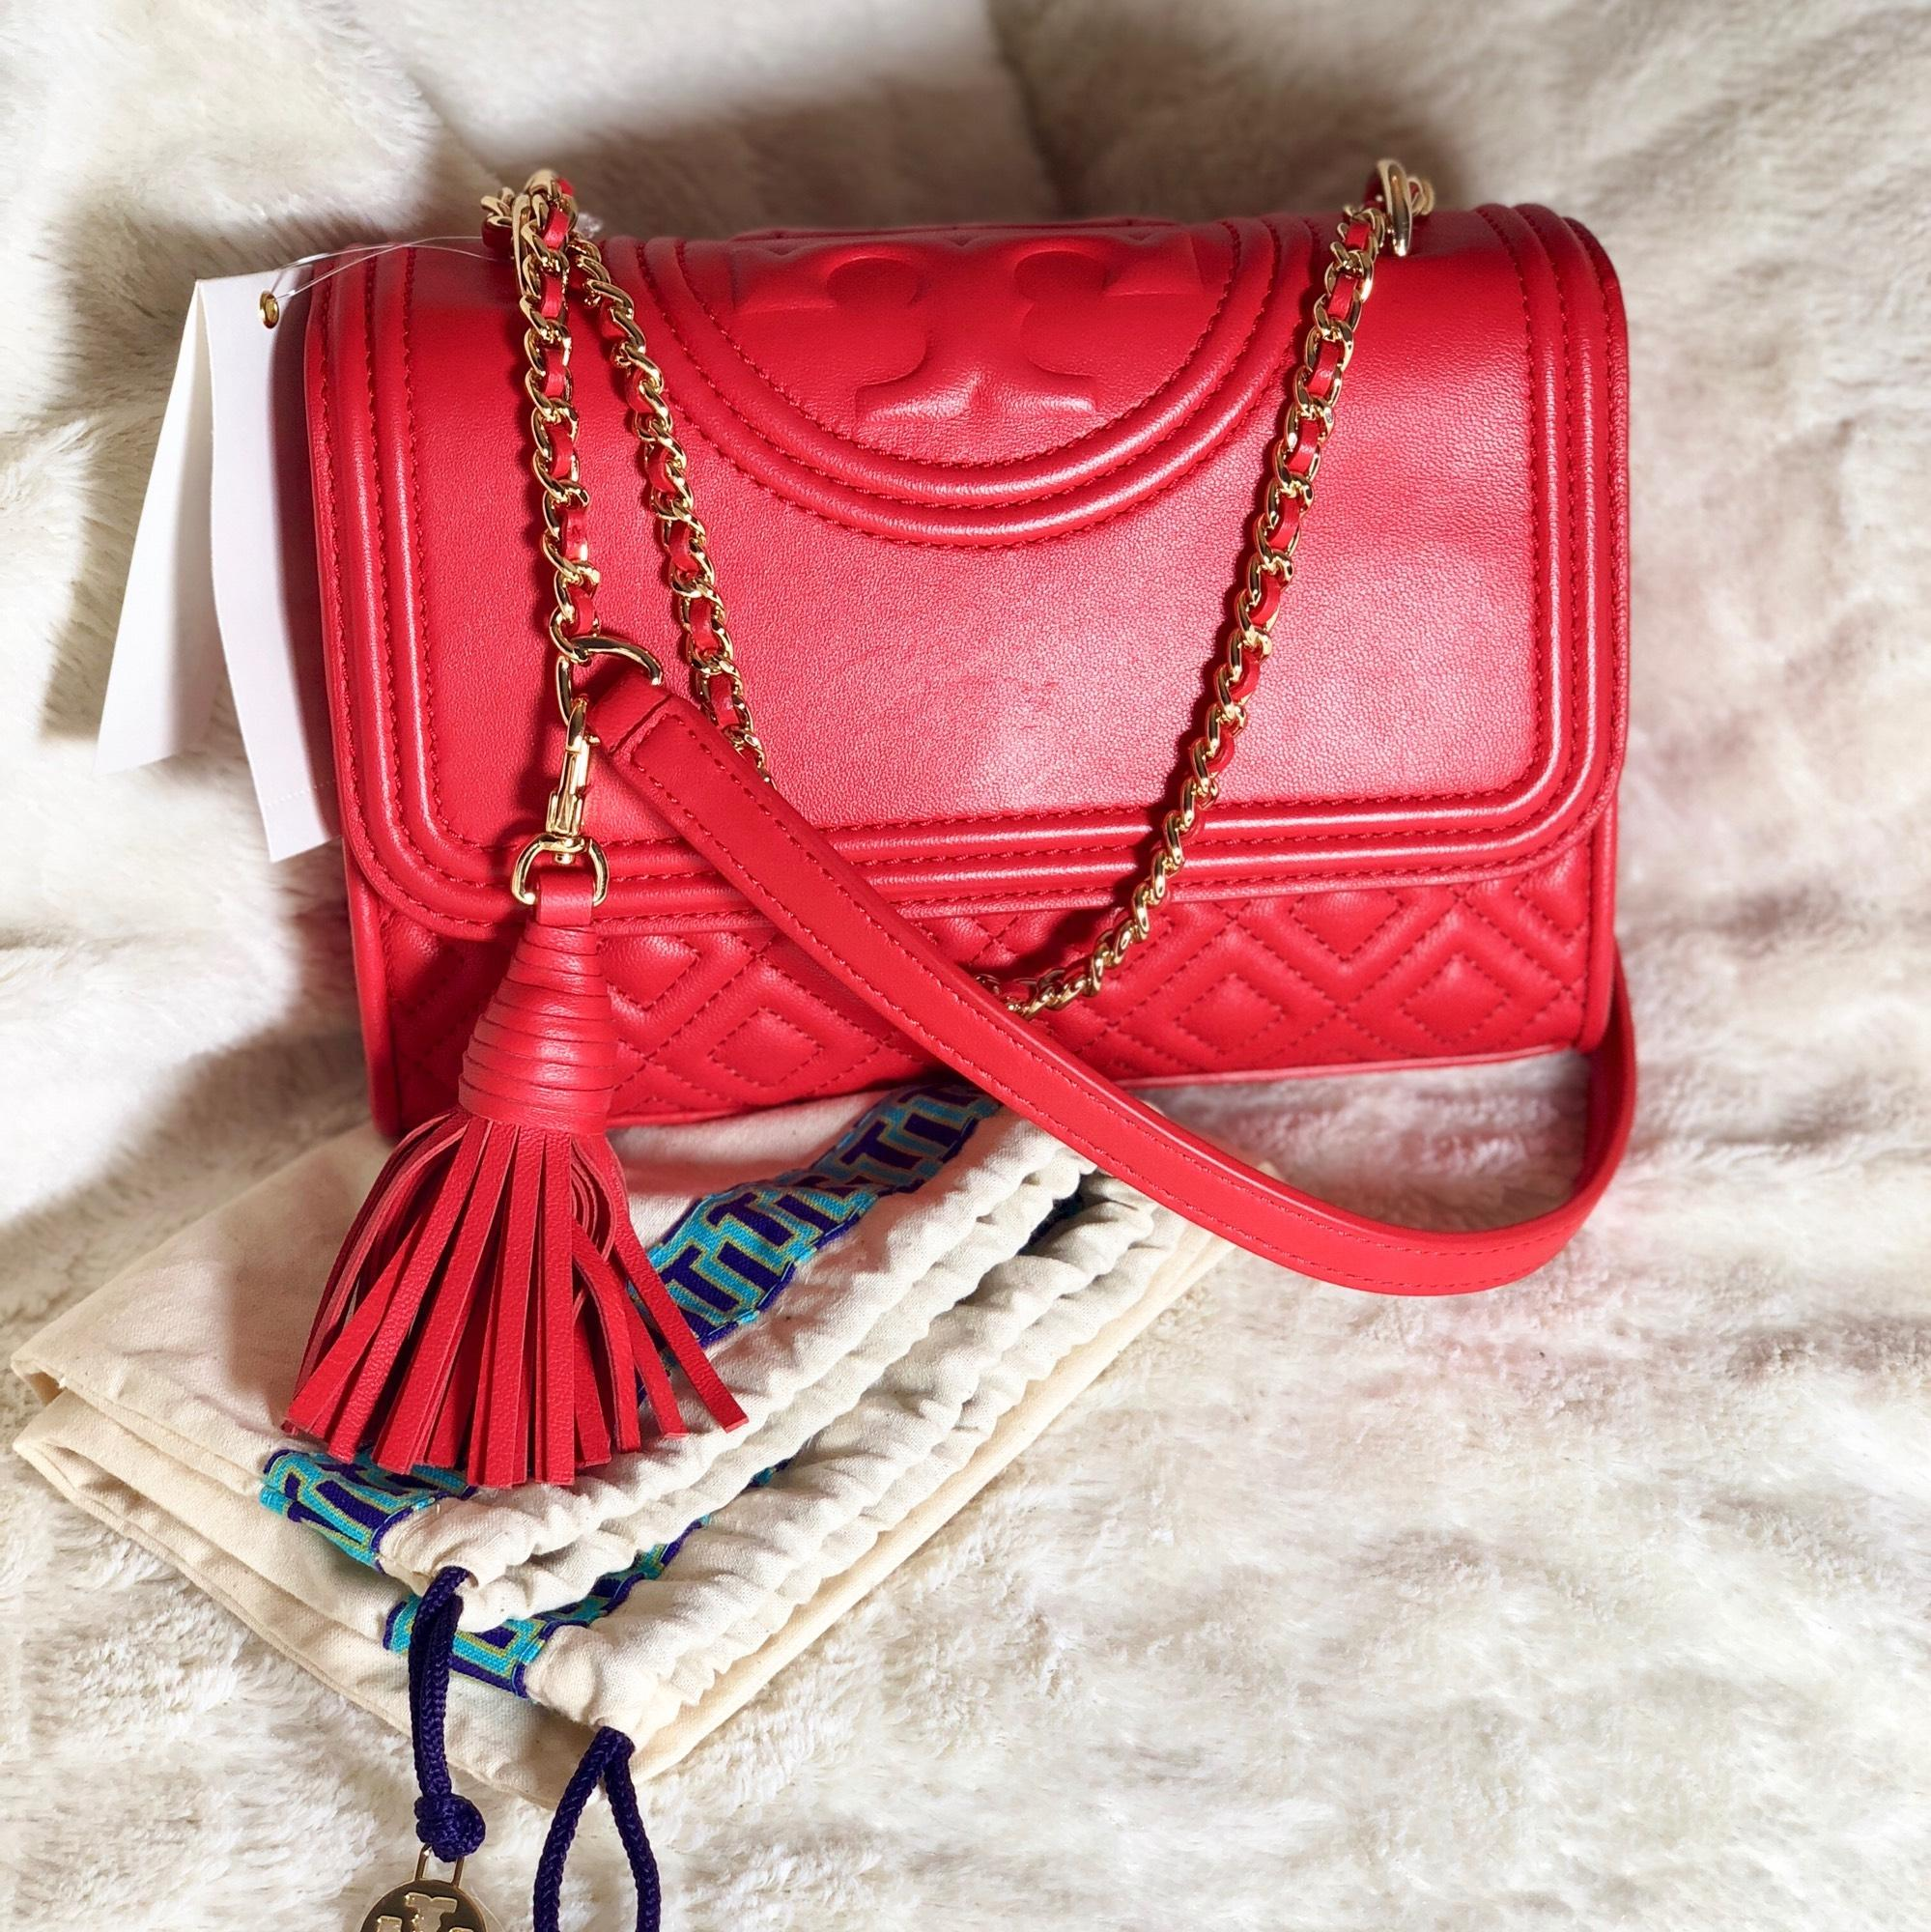 「TORY BURCH Fleming Quilted Leather Small Convertible Shoulder Bag red」的圖片搜尋結果